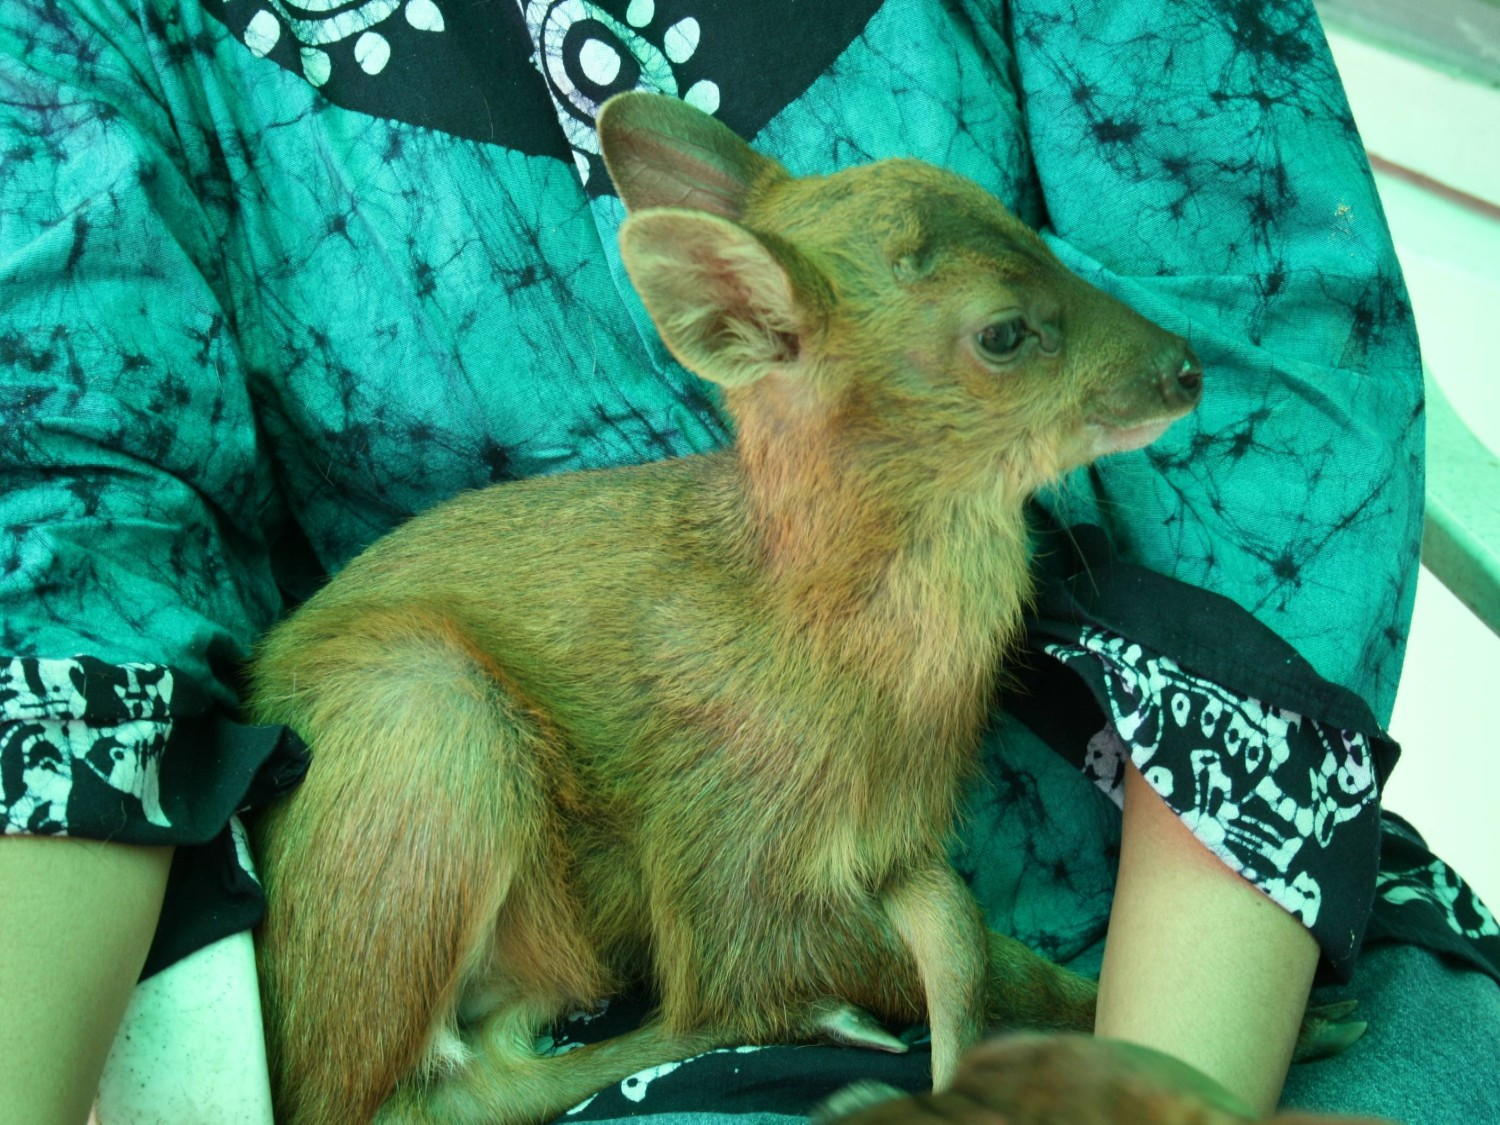 With Puris and Hay: How One Family Rescued & Raised Rudy, The Barking Deer